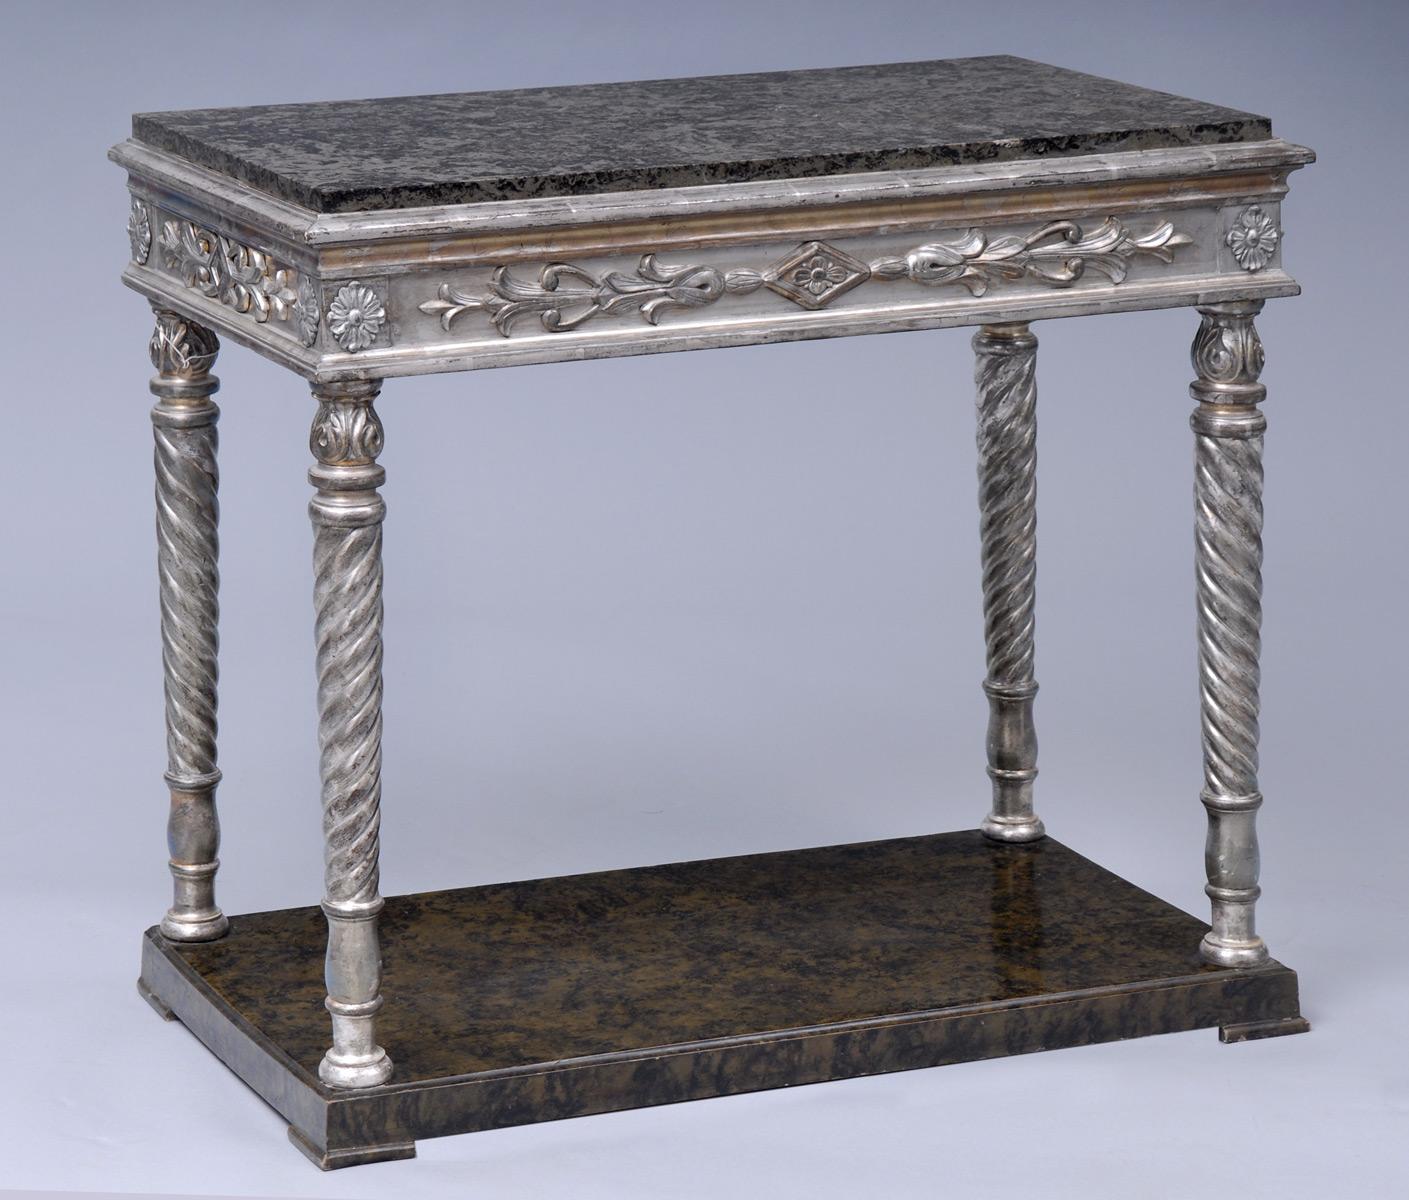 Antique Swedish Parcel Silver Leaf U0026 Marble Console Table, Circa 1840